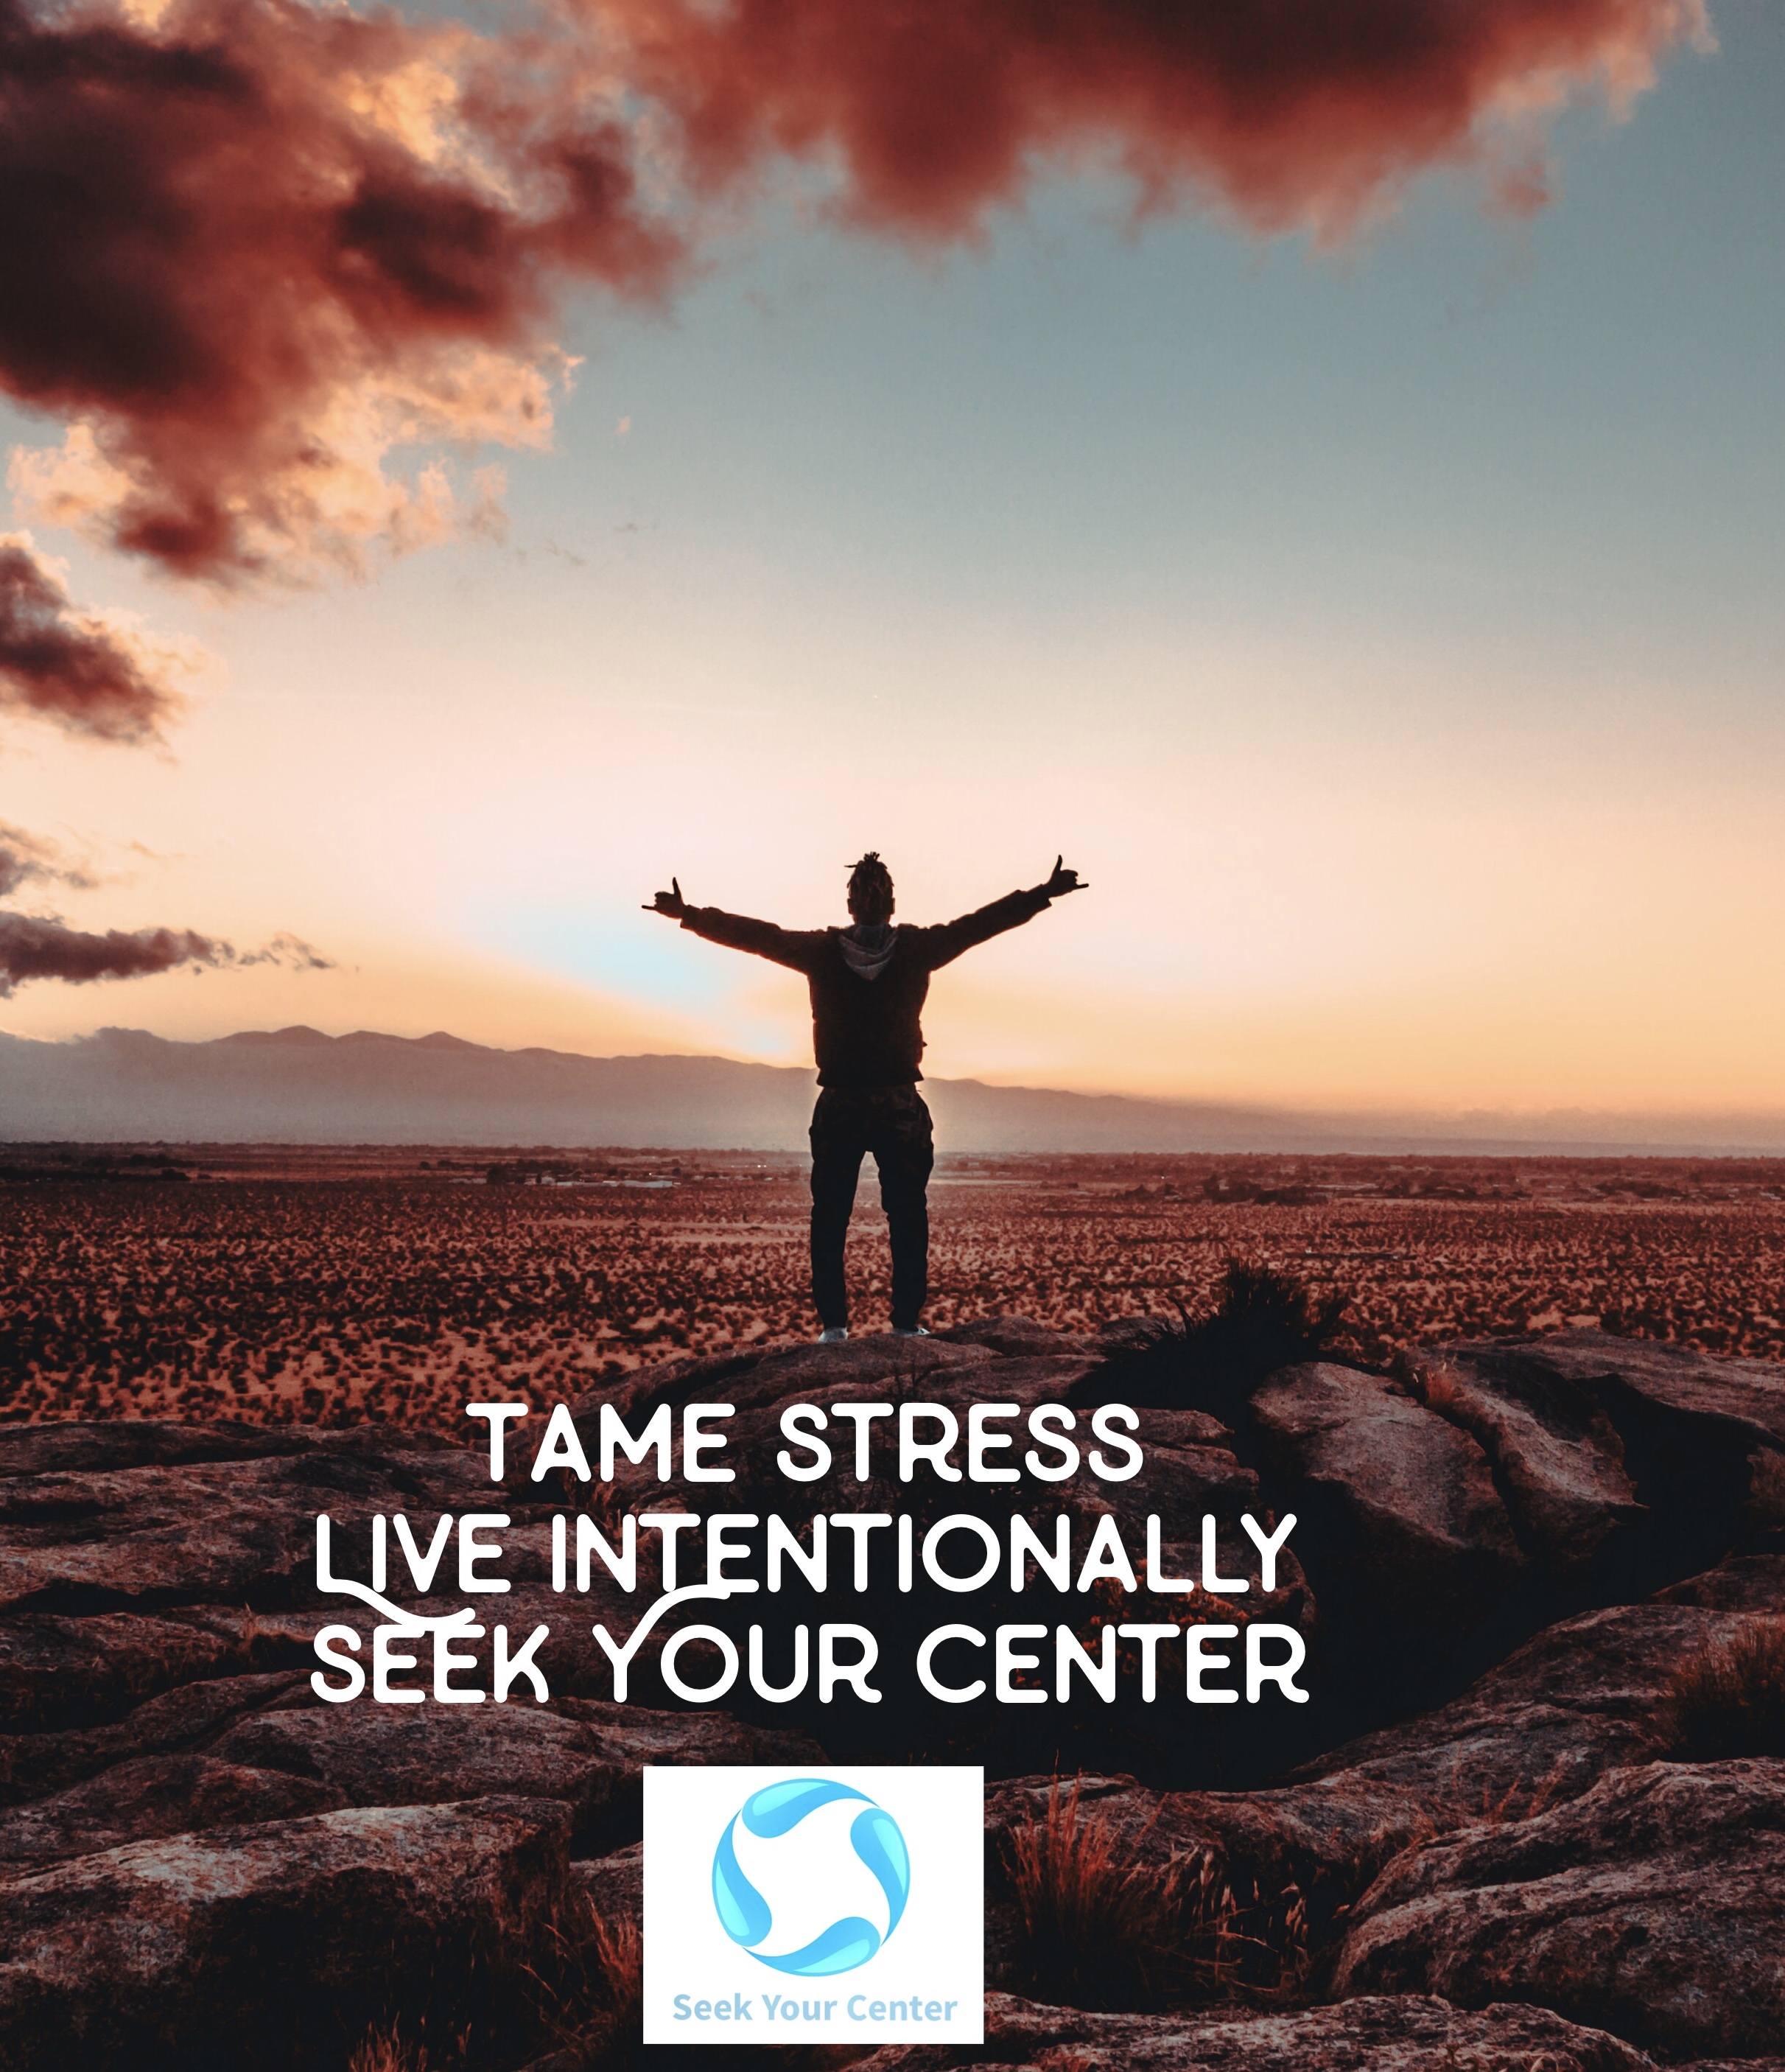 We can help you tame your stress, live intentionally, and Seek Your Center.